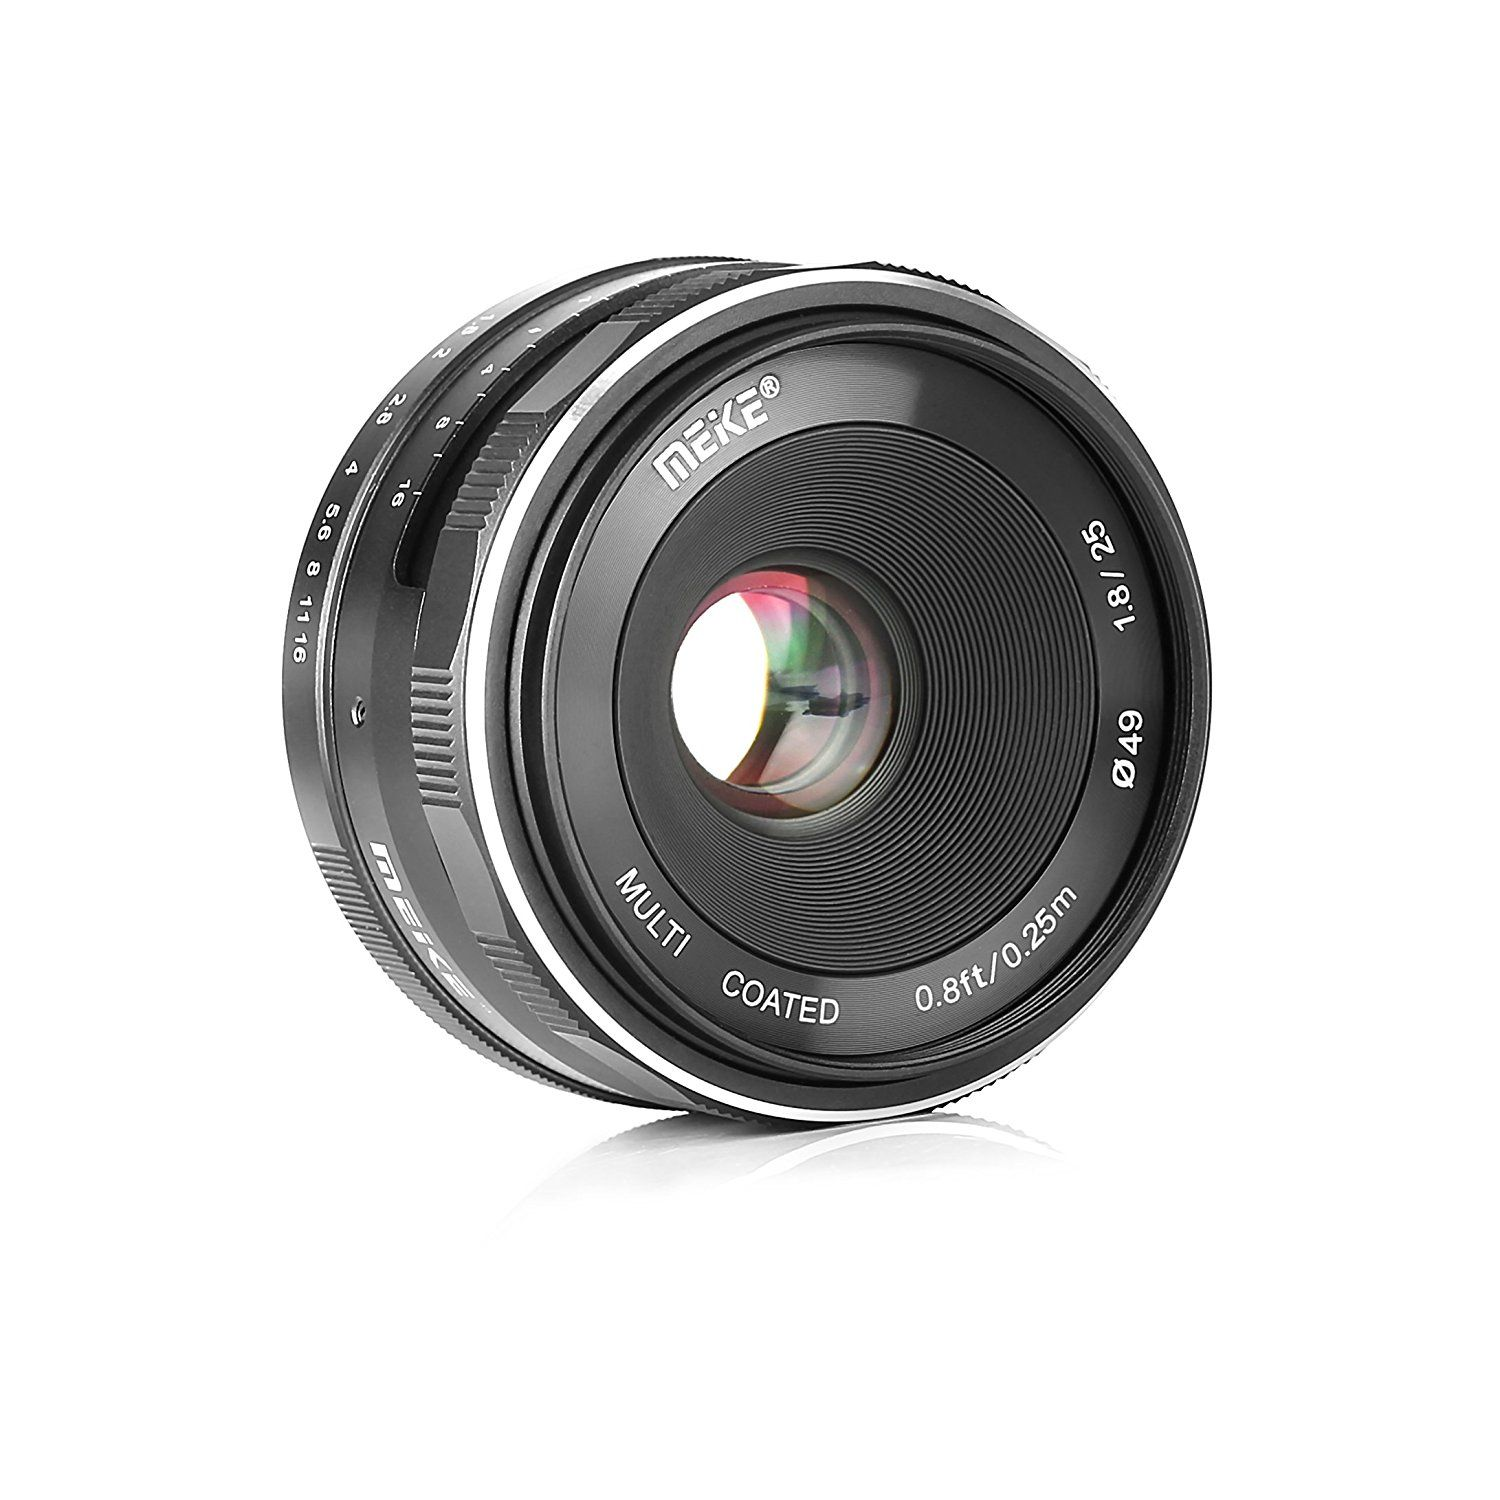 Meike New Lens Released Mk 25mm F 18 16 Large Aperture Wide Angle 50mm F2 For Mft Micro Four Third Mirrorless Manual Focus Sony E Mount Cameras